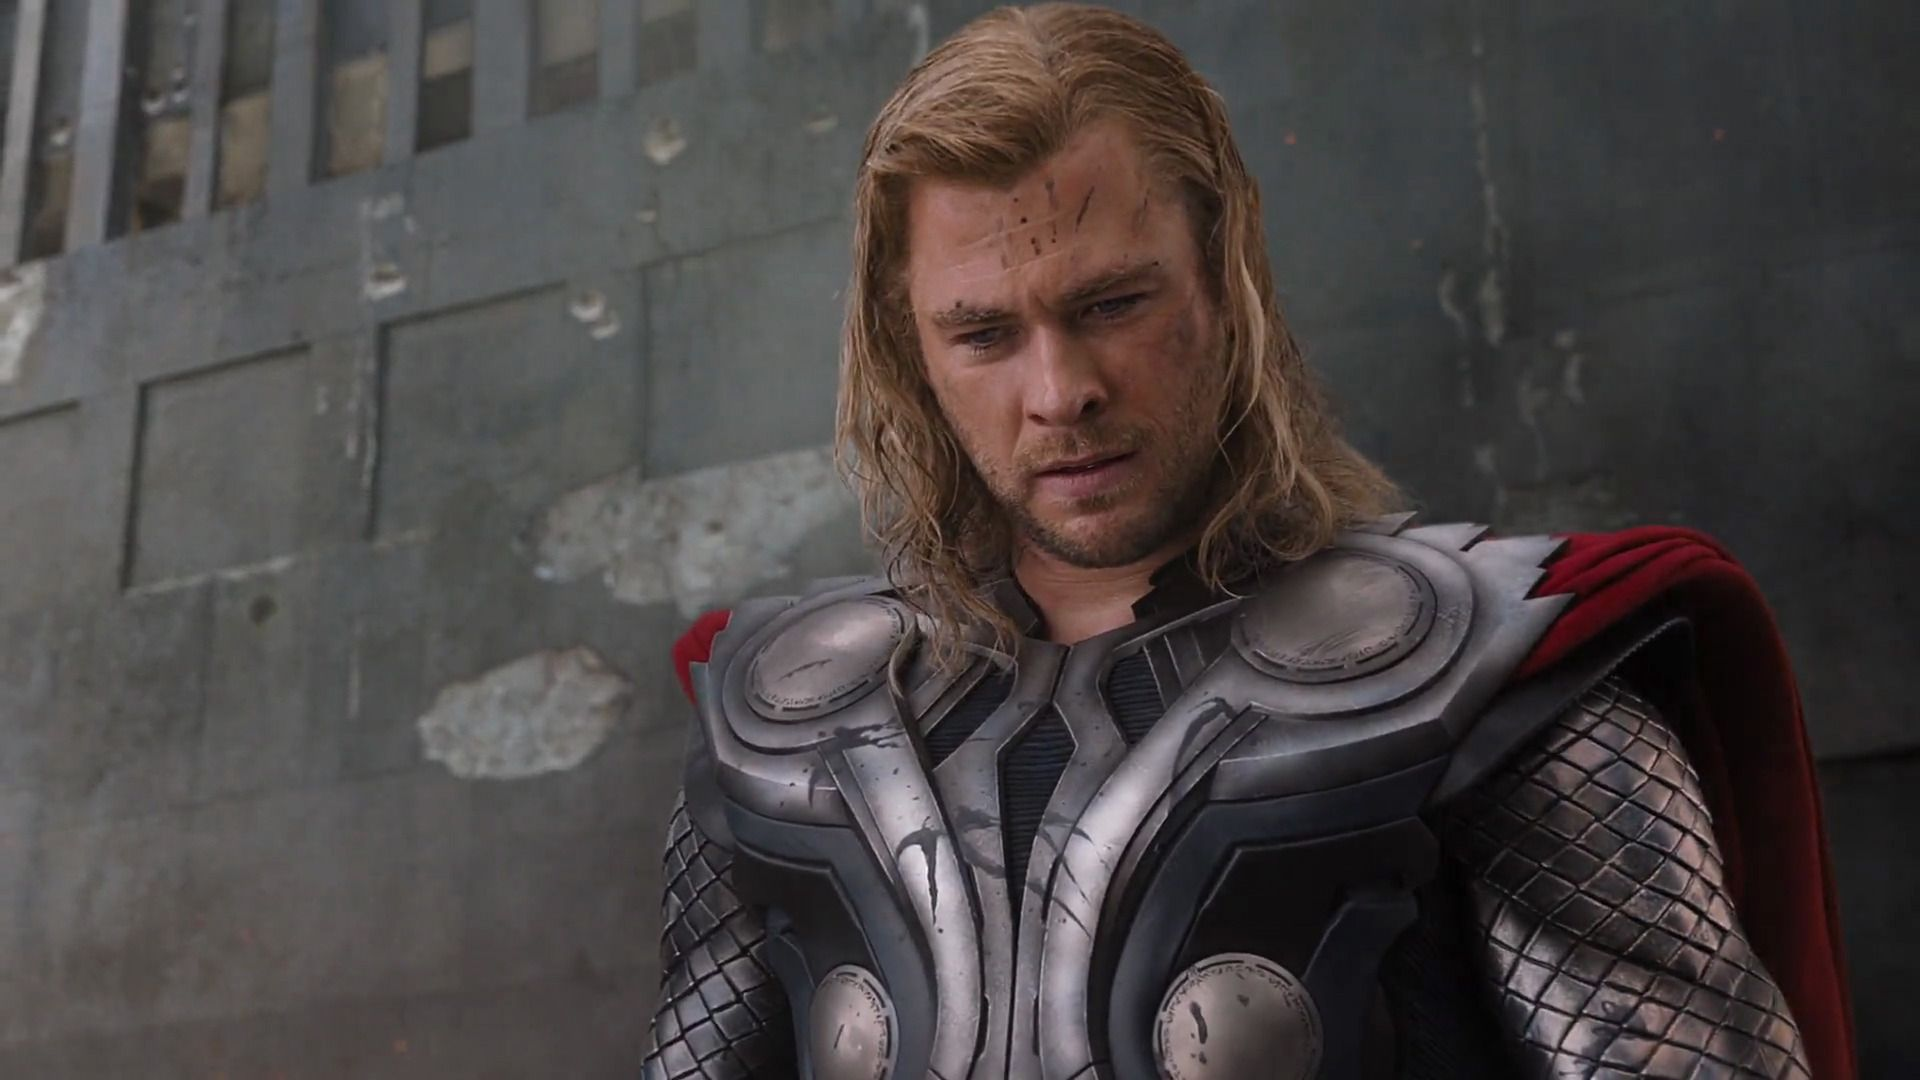 Thor From the Avengers | The Avengers The Avengers Climax ...